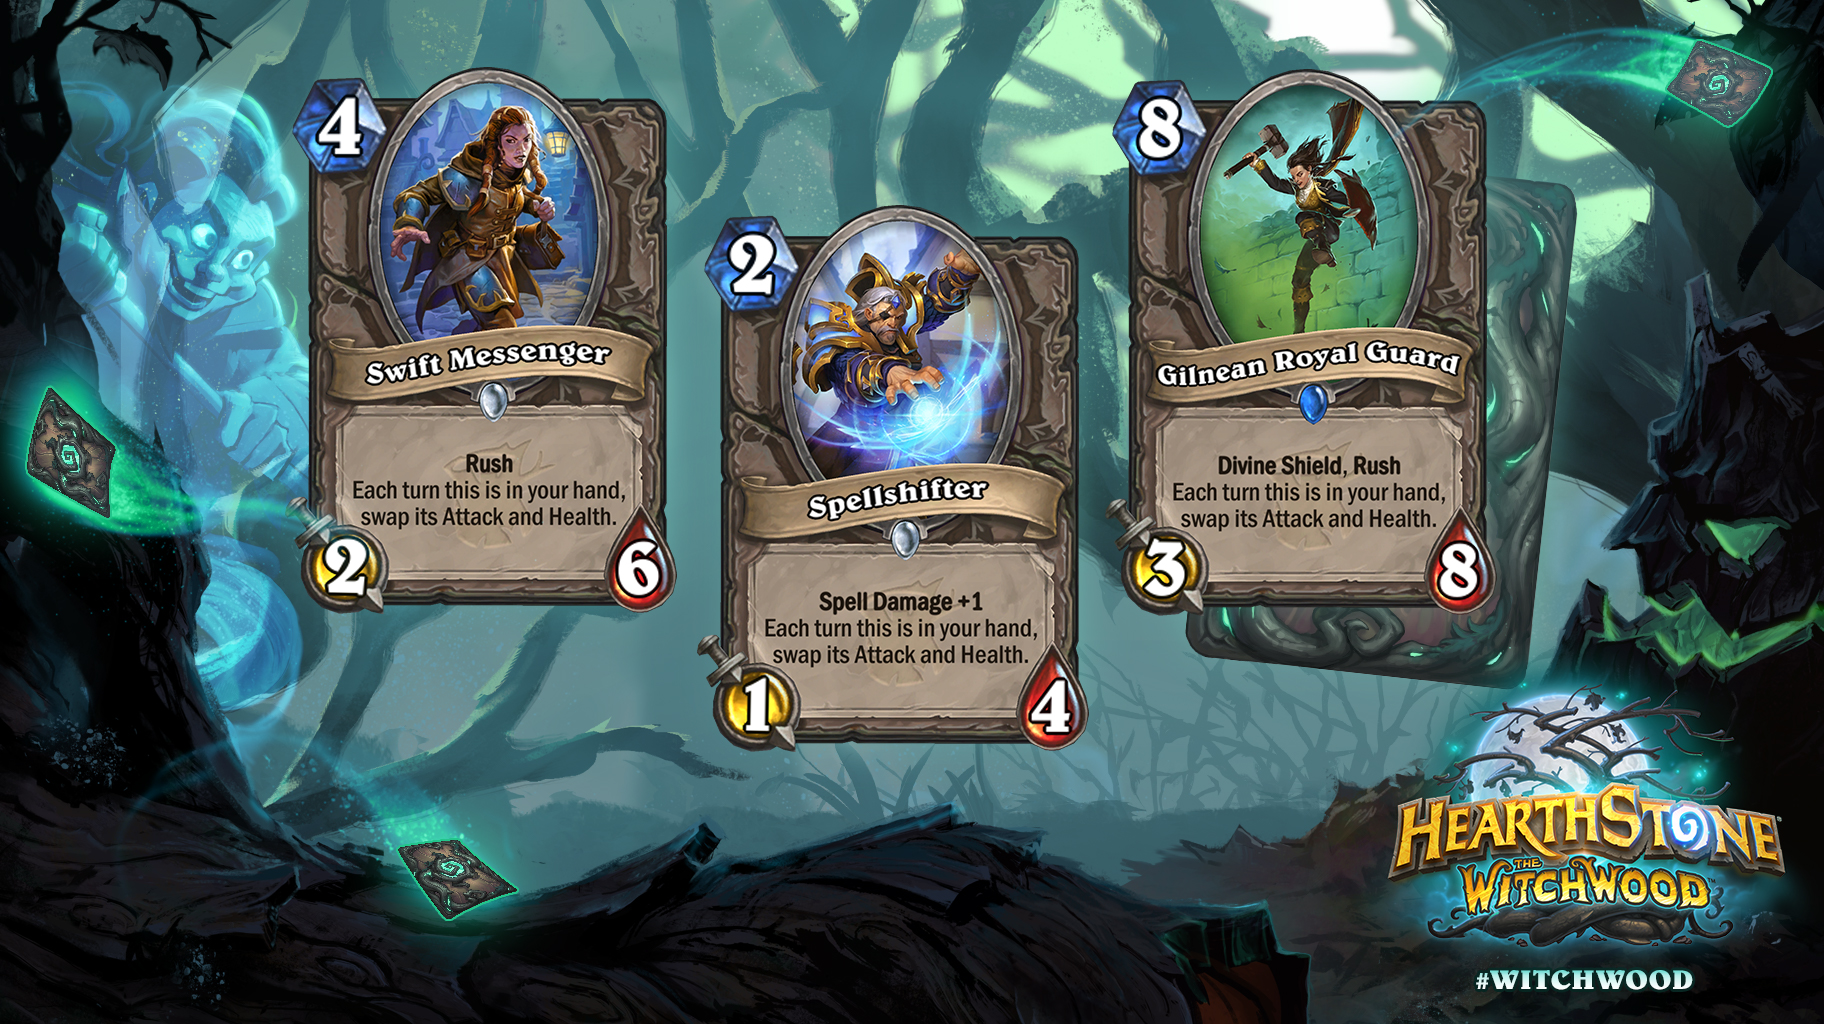 Hearthstone: The Witchwood: Three new neutral minions revealed; Gilnean Royal Guard, Spellshifter and Swift Messenger